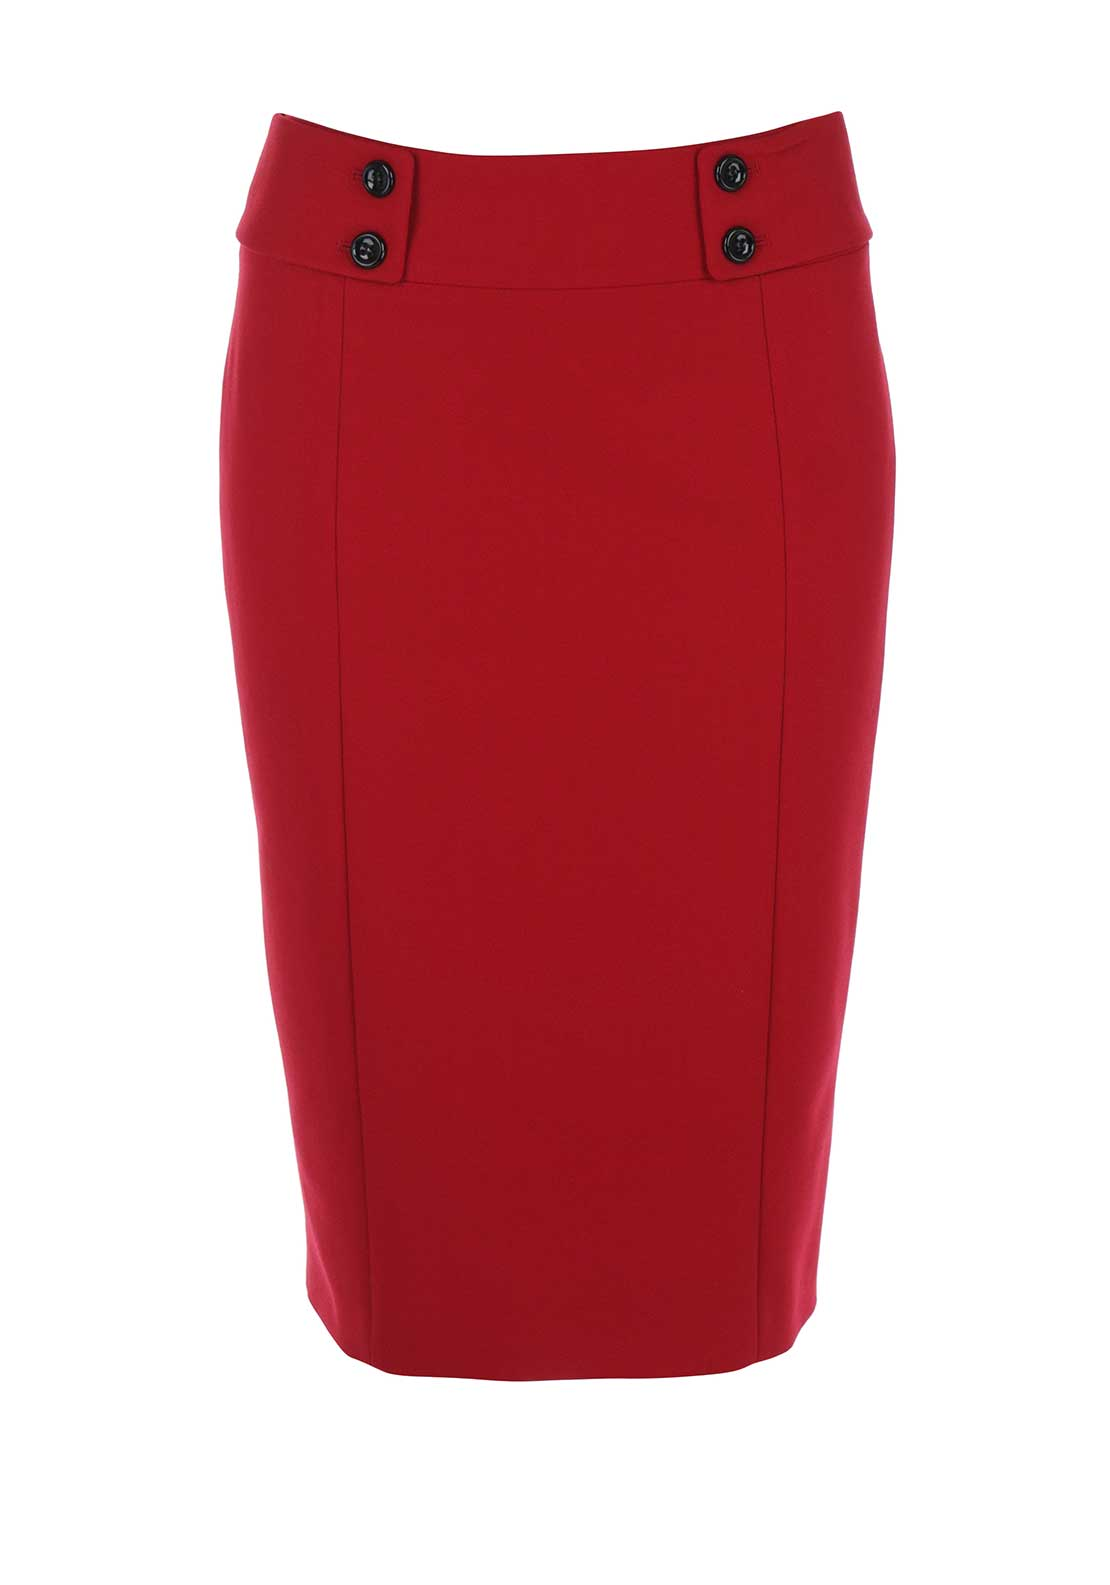 Gerry Weber Crepe Pencil Skirt, Red